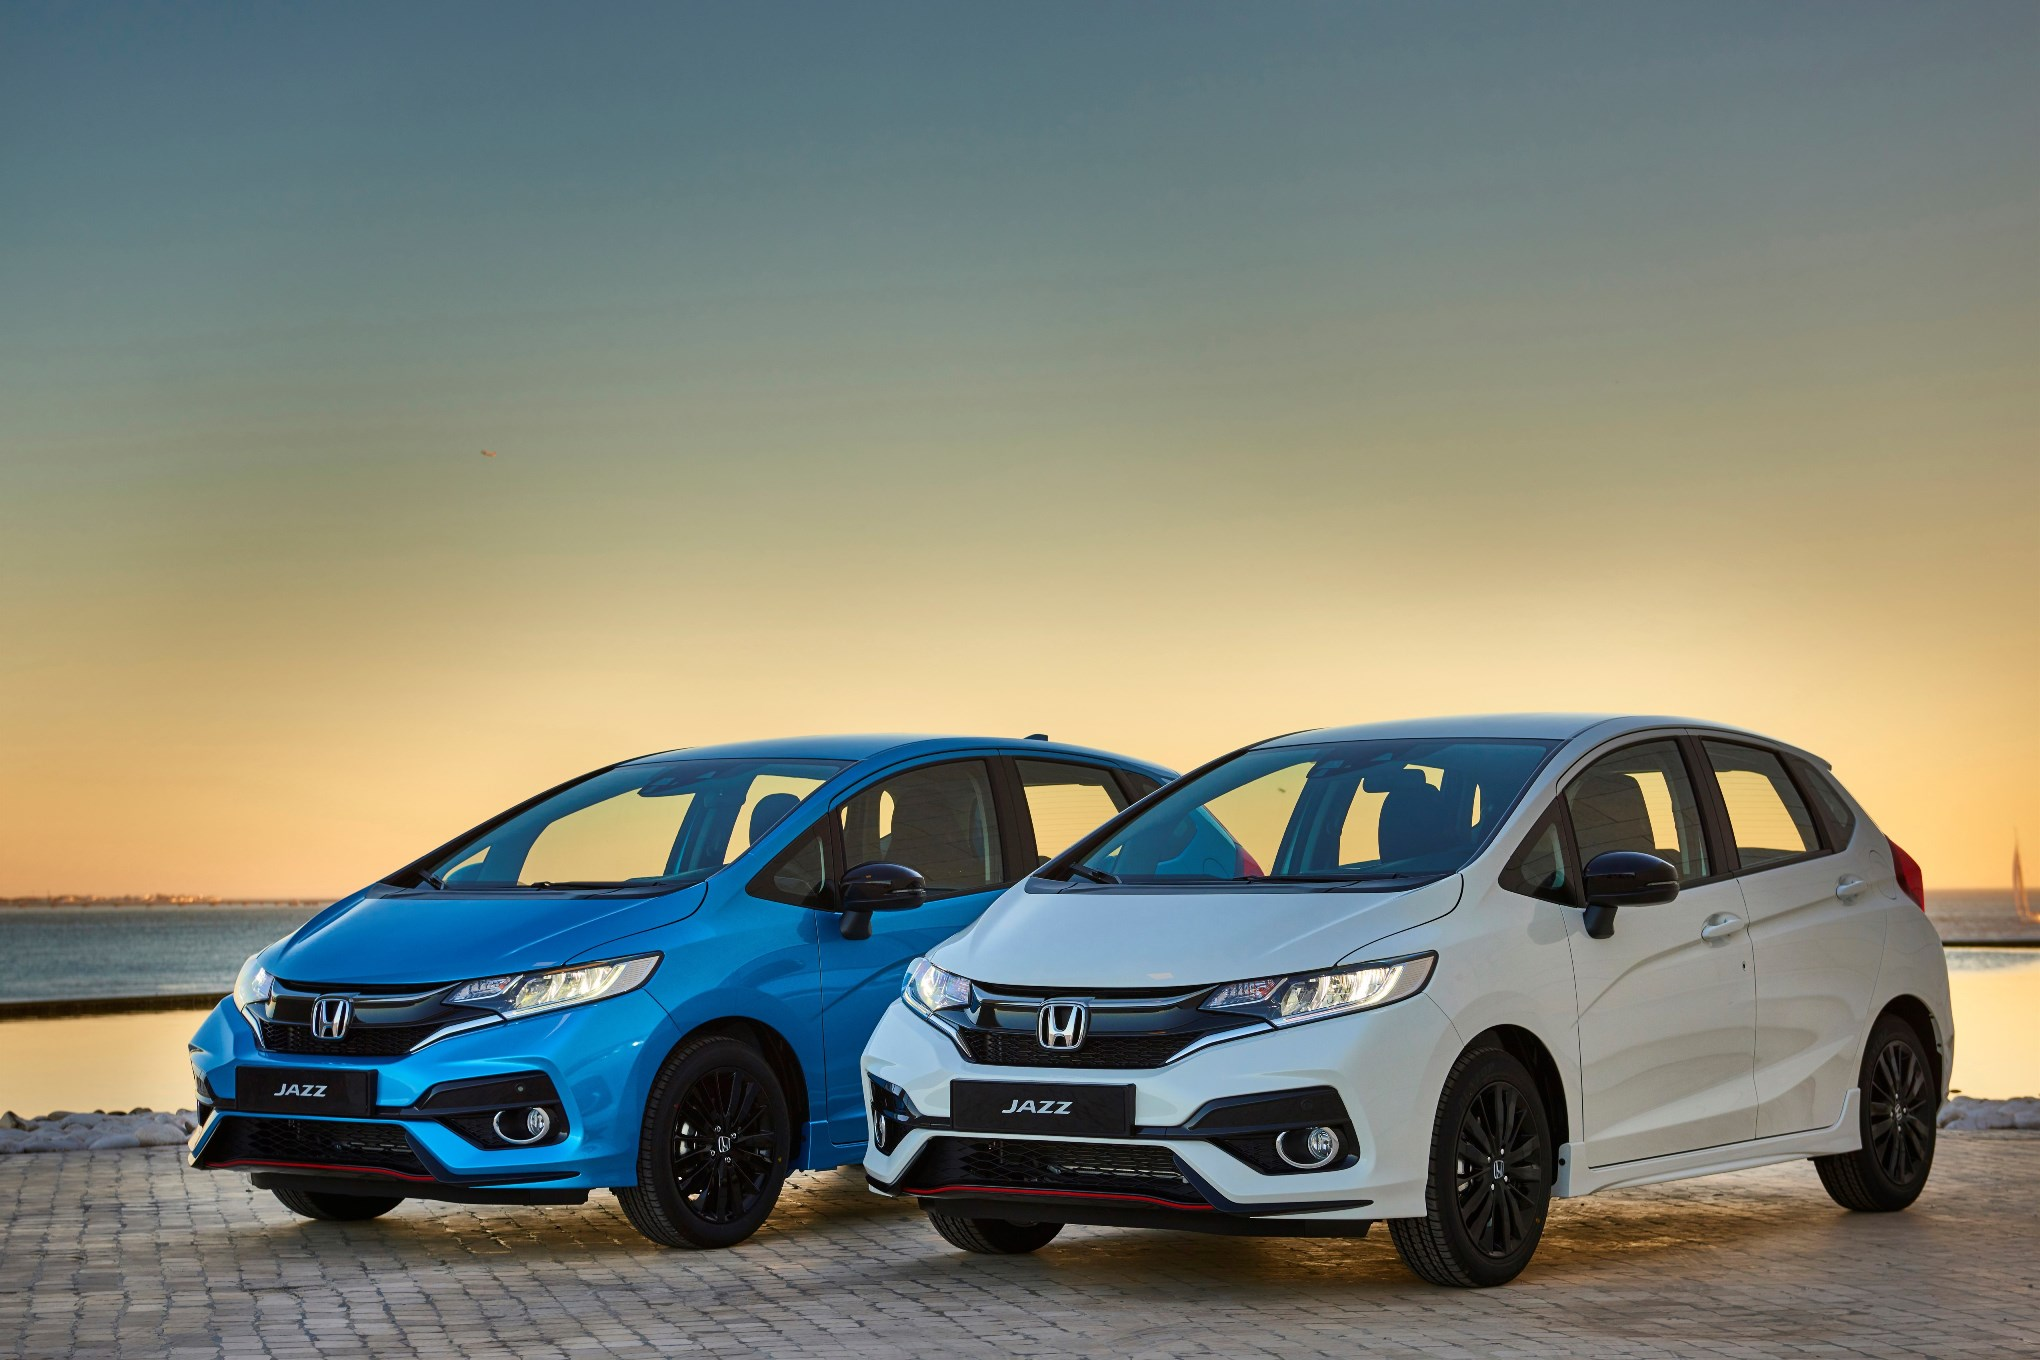 Updated Honda Jazz gets new engine option and sharper styling